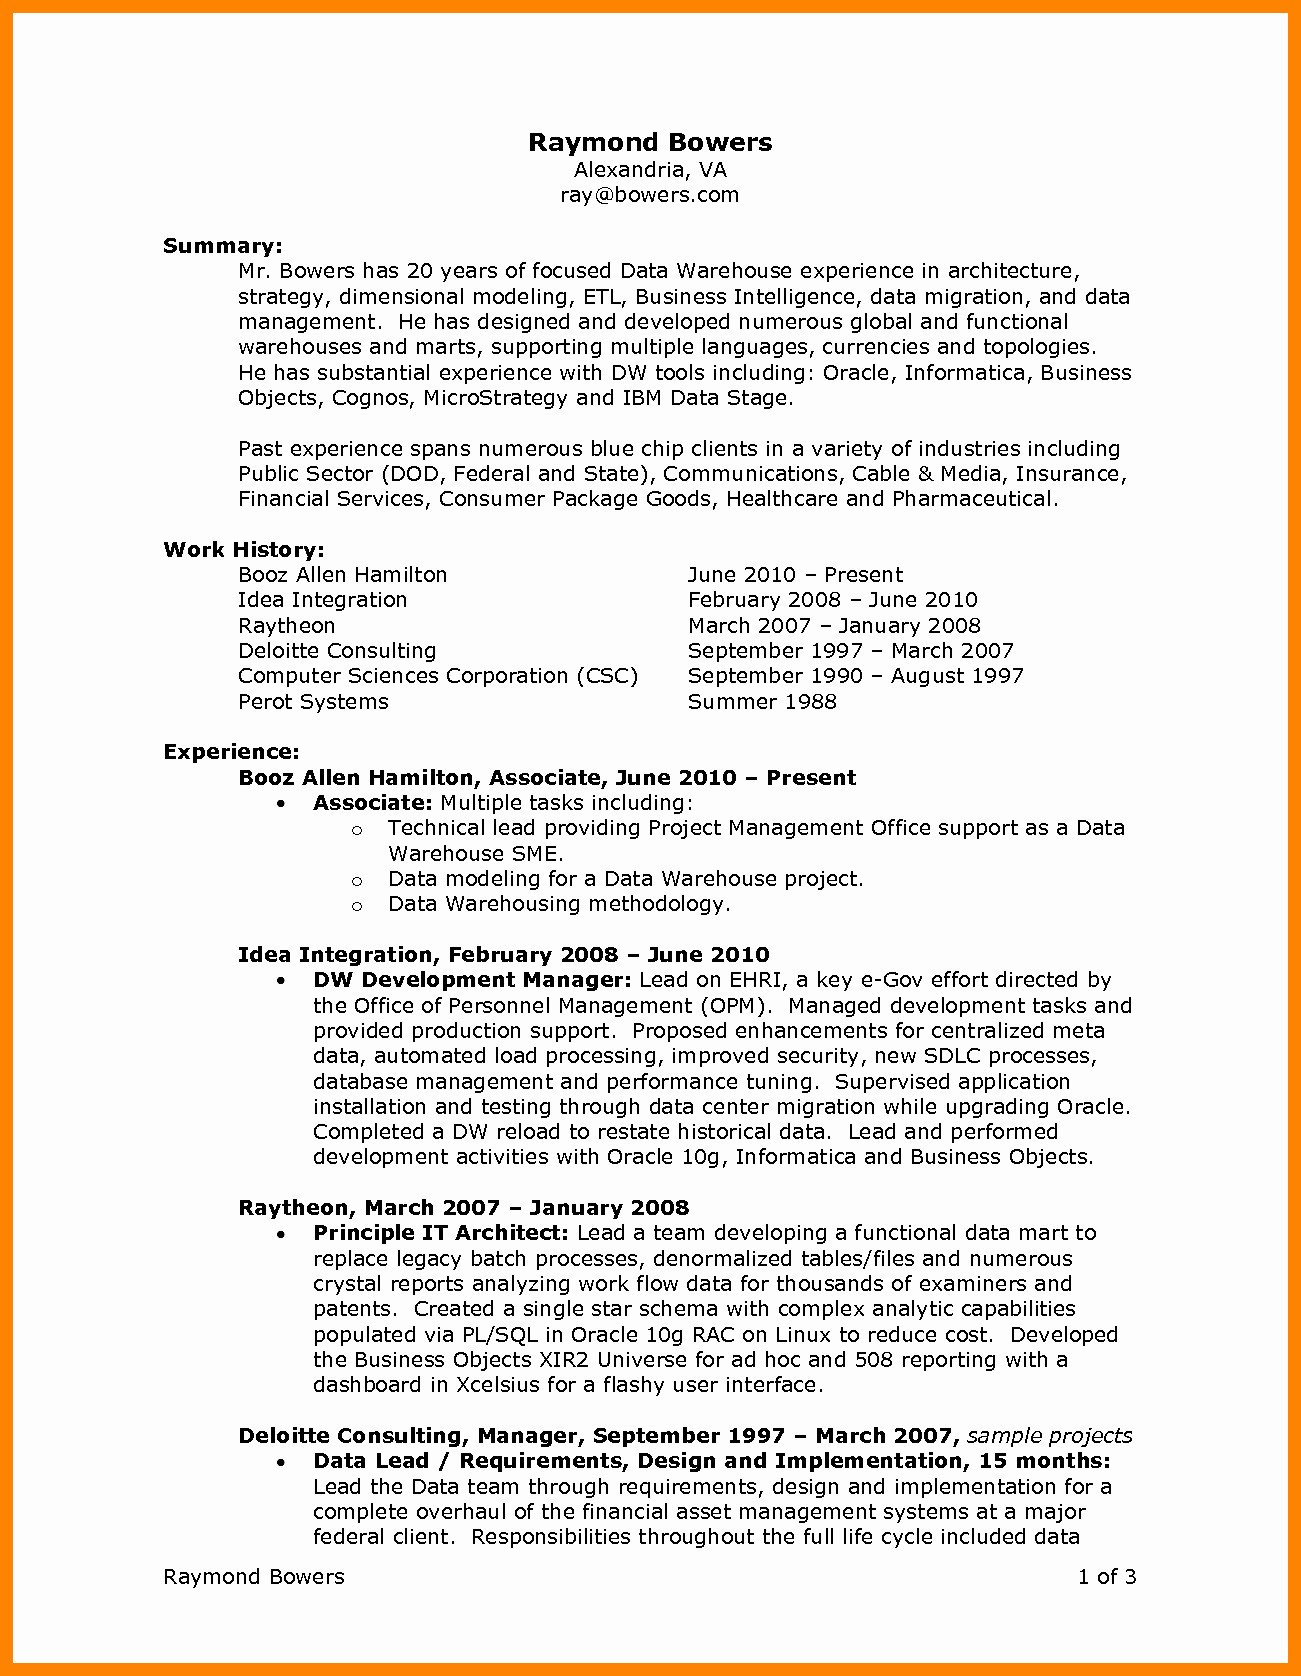 Media Resume Template - Resume for Internal Promotion Template Free Downloads Beautiful